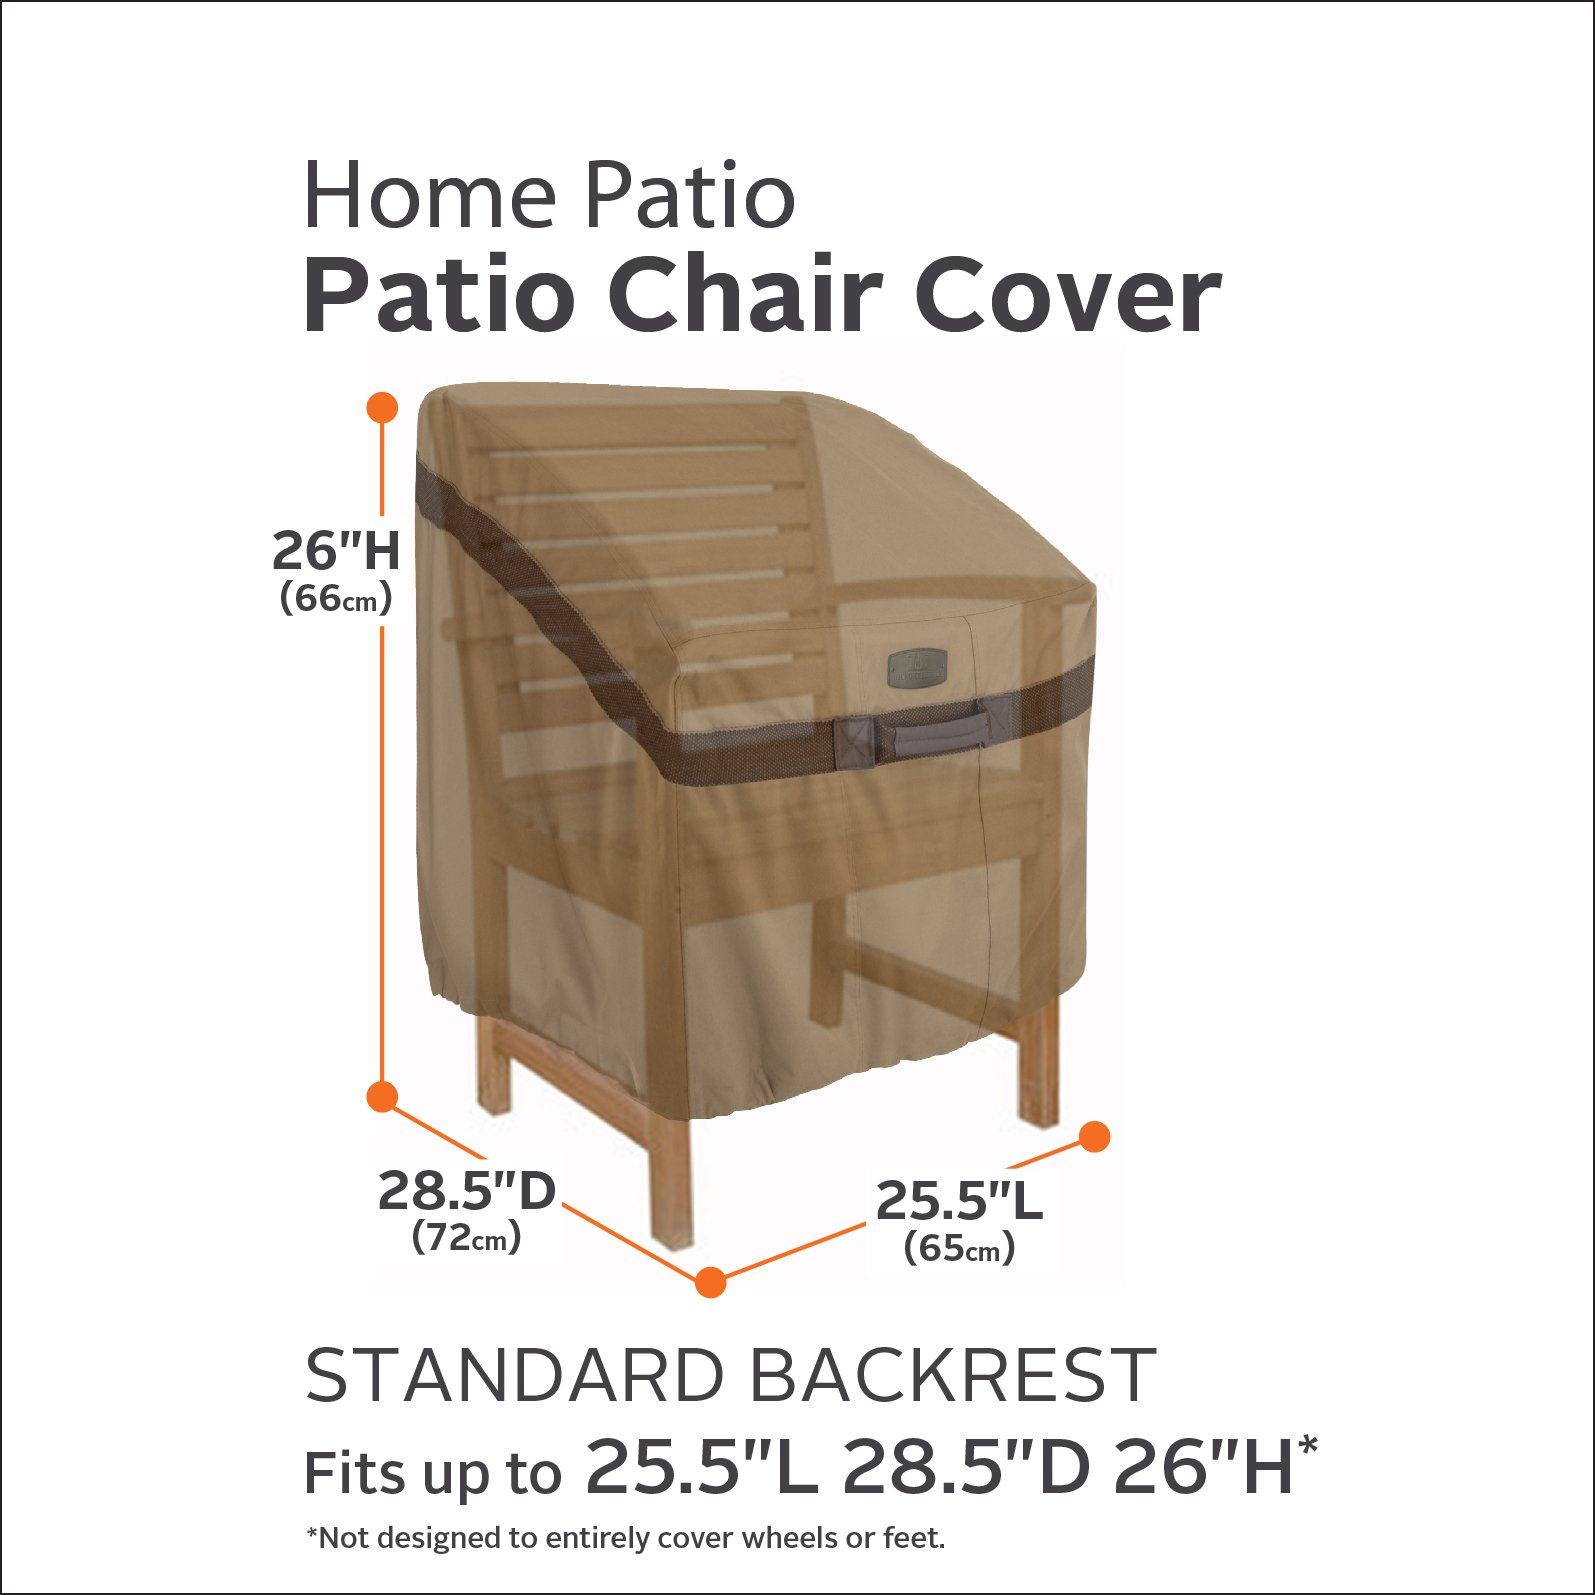 Classic Accessories Hickory Heavy Duty Standard Patio Chair Cover - Durable and Water Resistant Patio Set Cover (55-208-012401-EC) by Classic Accessories (Image #2)